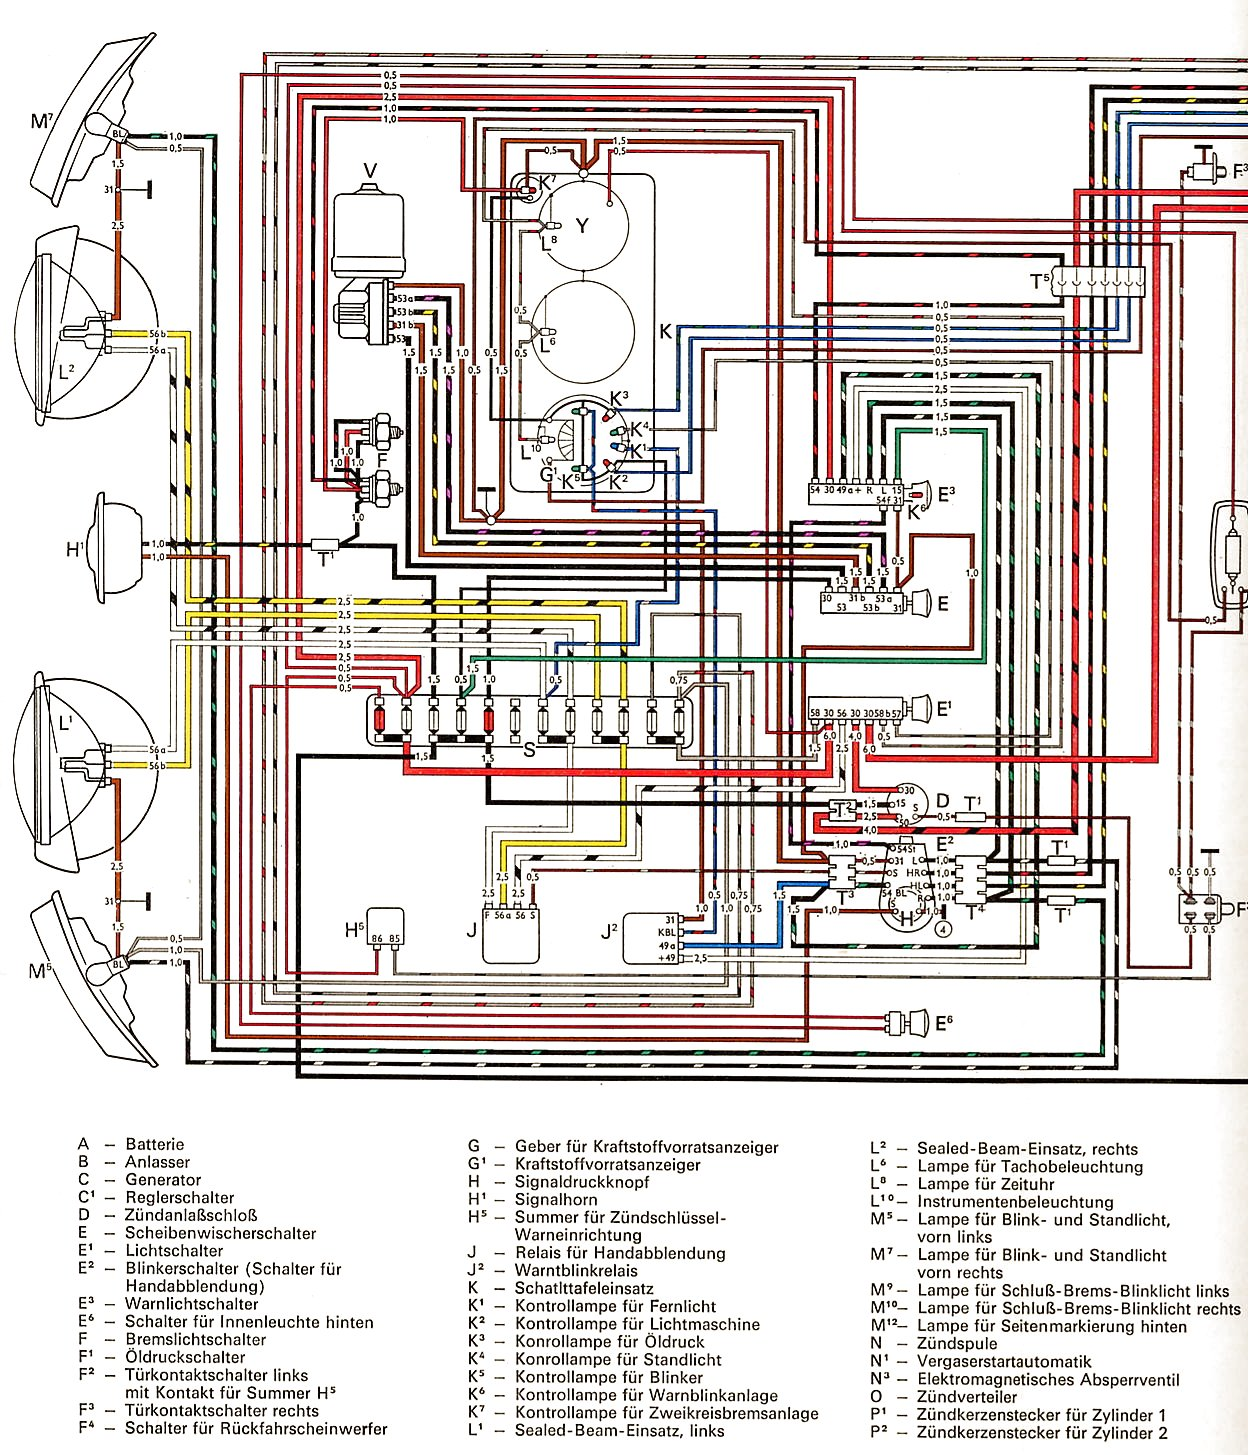 1969 vw beetle fuse diagram 1969 image wiring diagram 73 beetle wiring diagram picture schematic 73 auto wiring on 1969 vw beetle fuse diagram